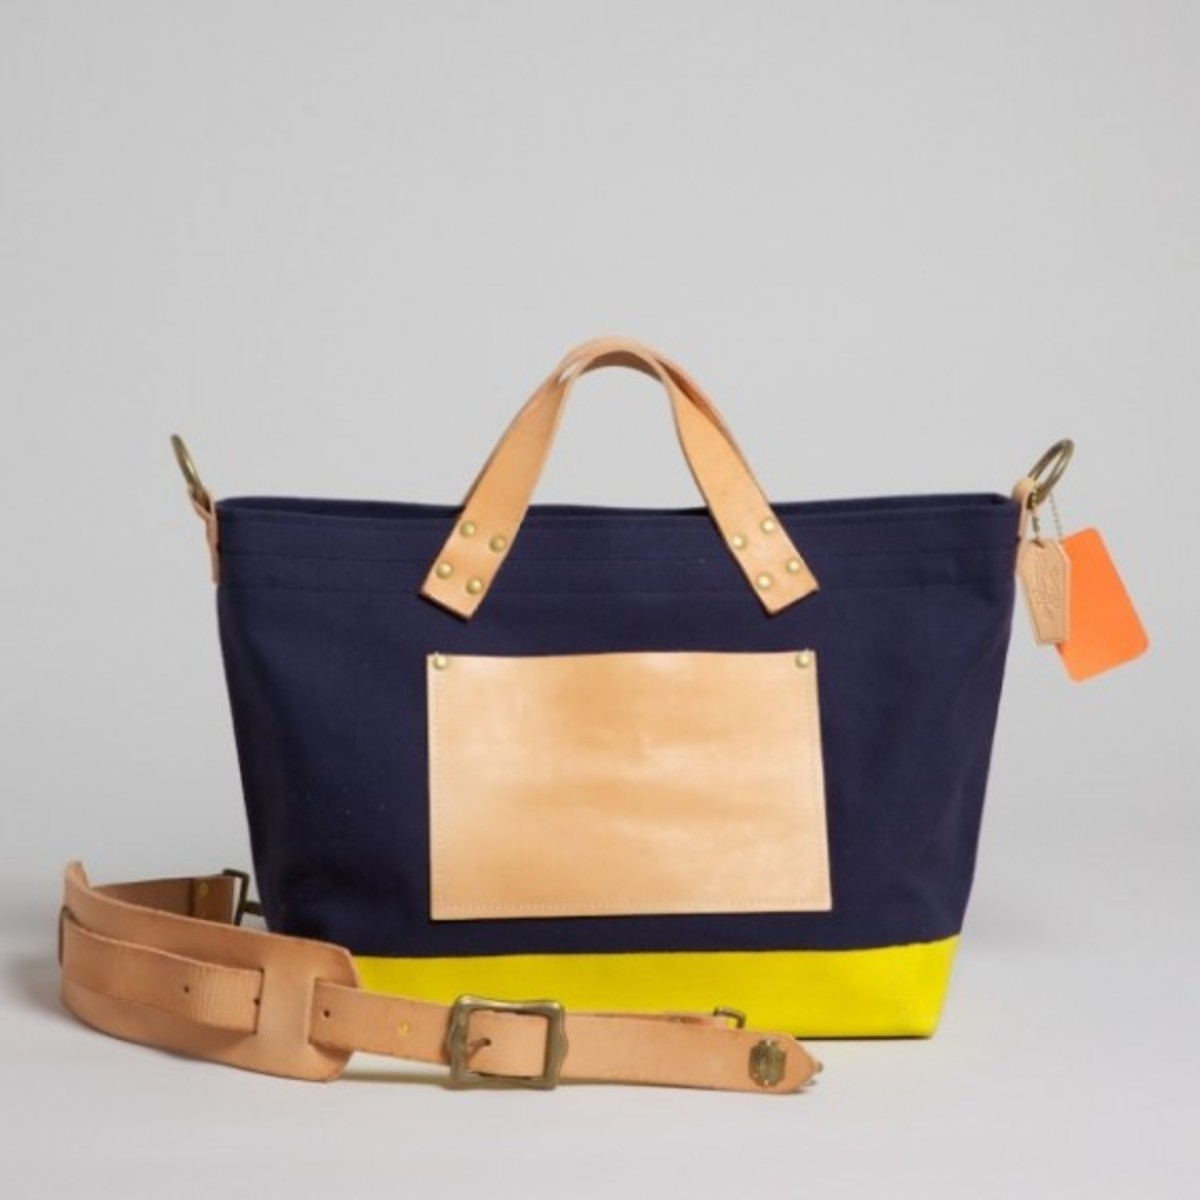 superior-labor-engineer-tote-bag-06